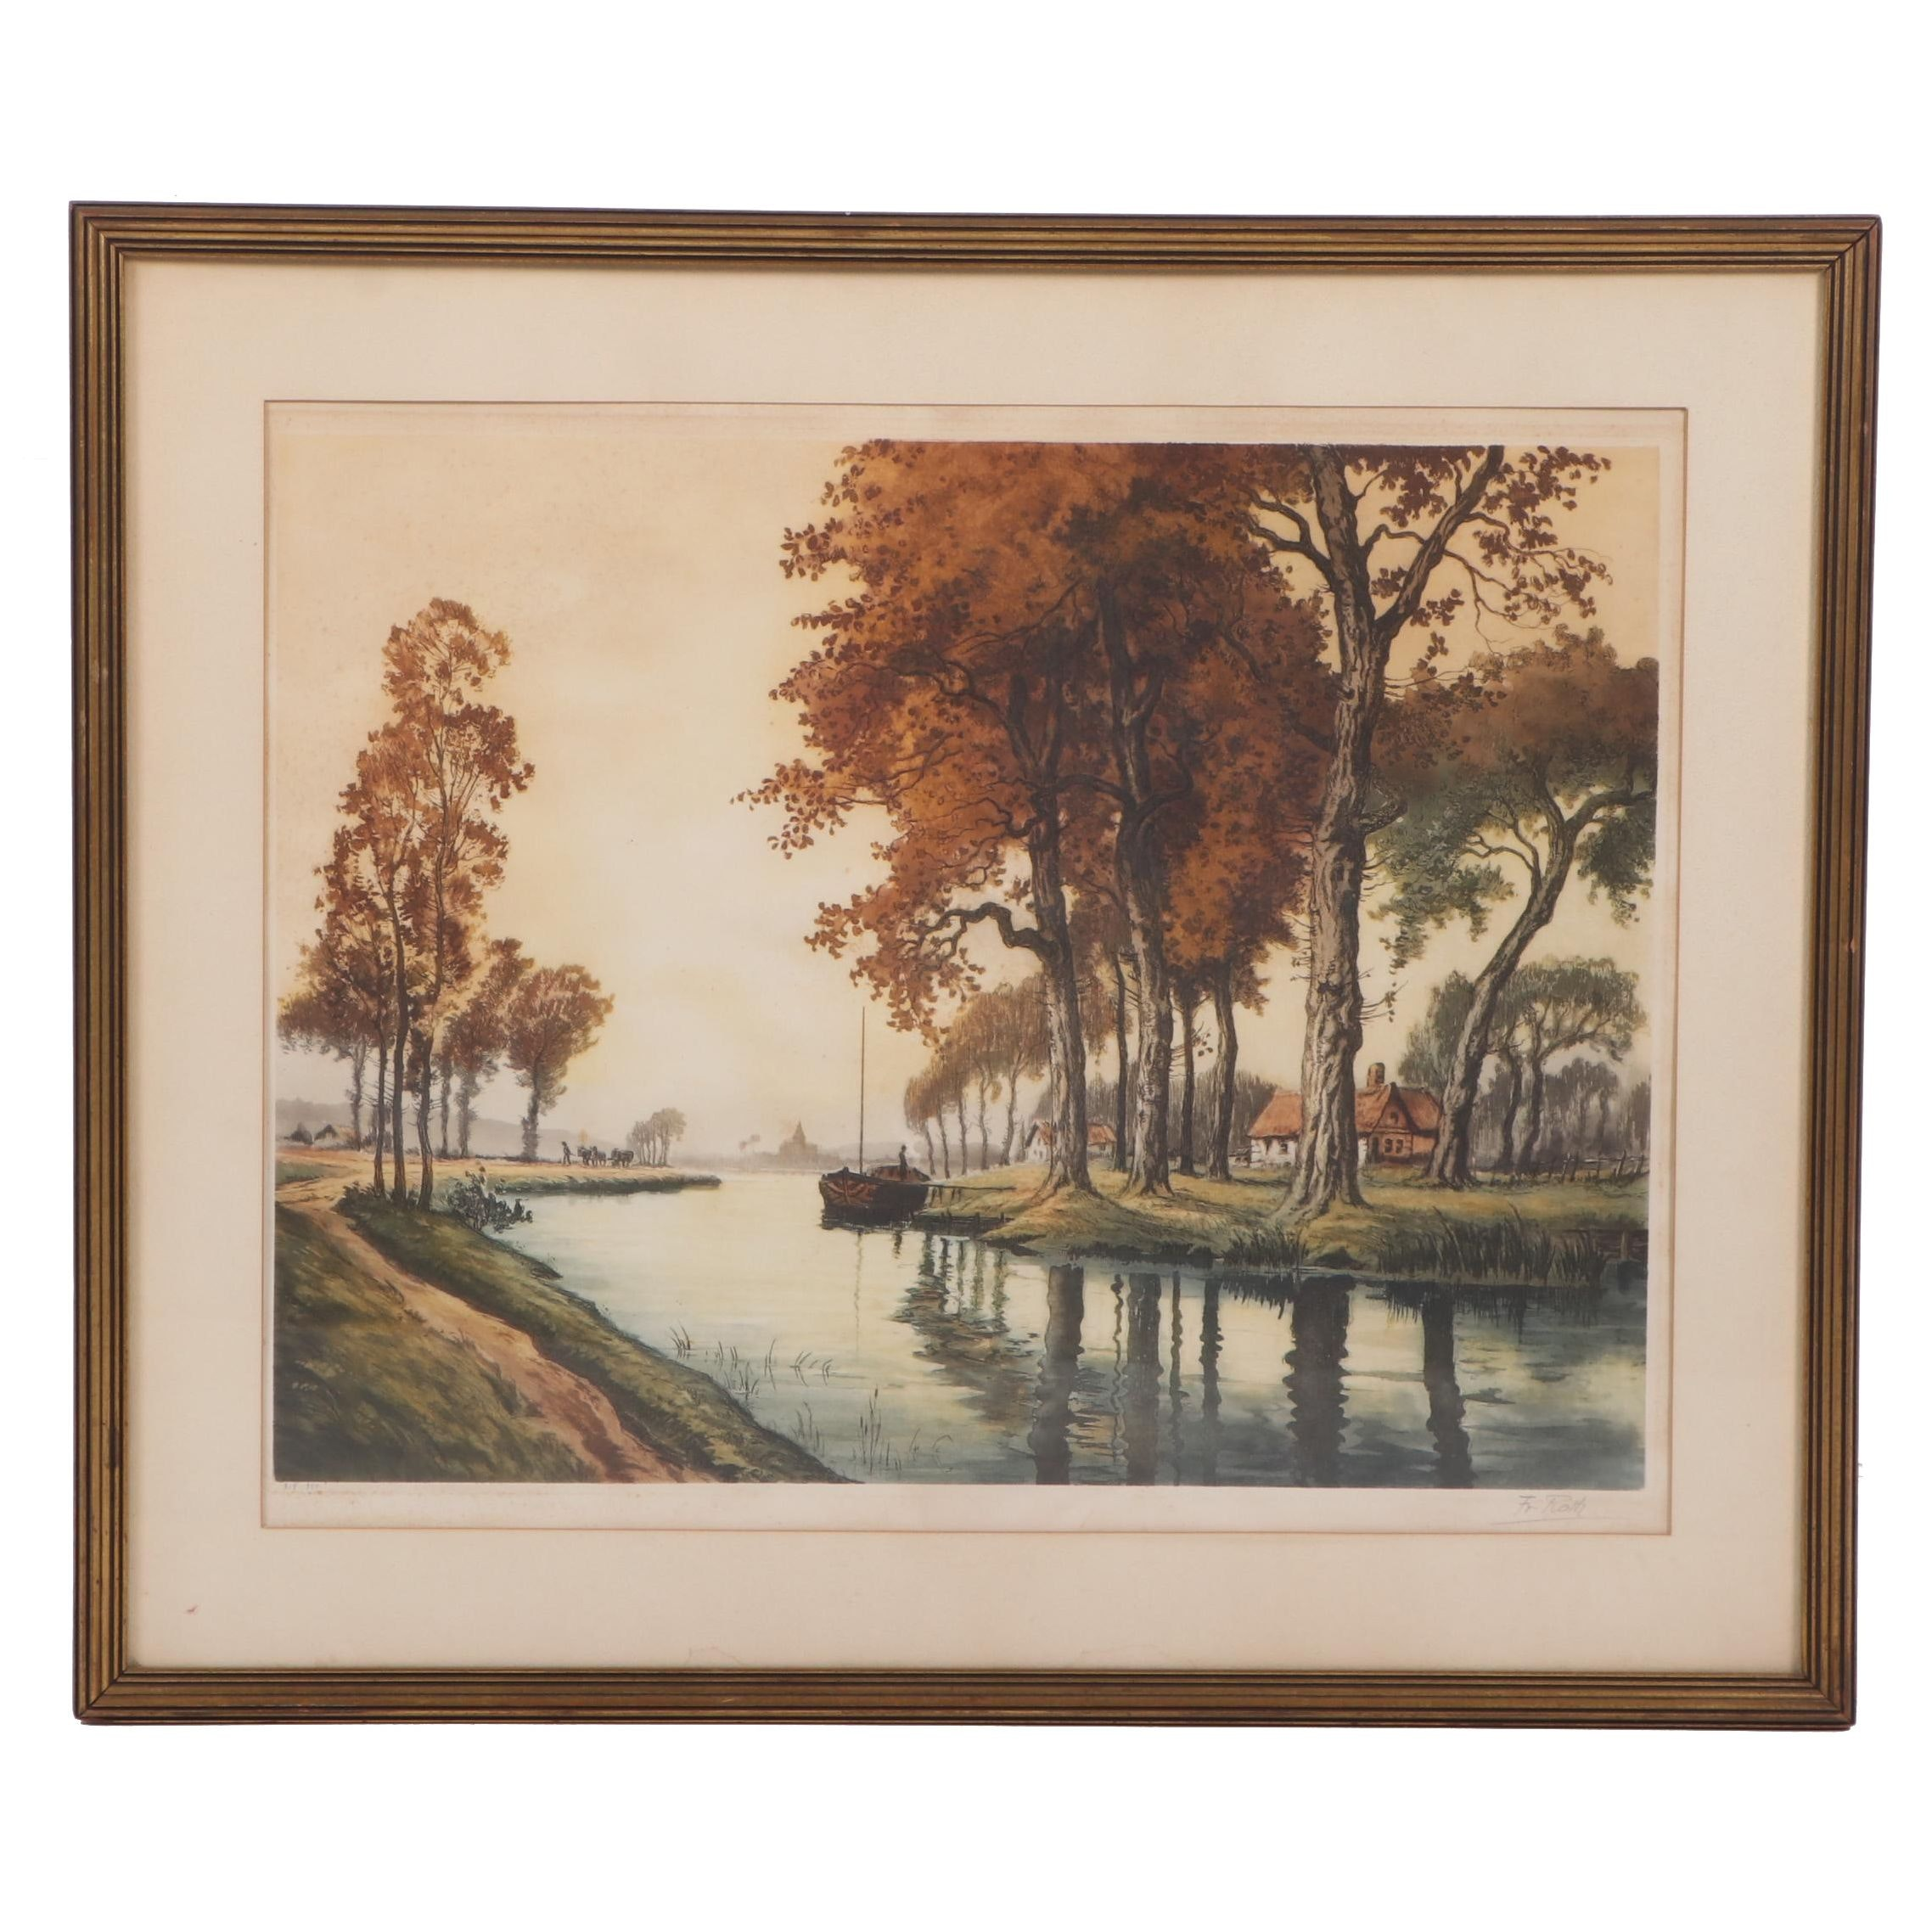 Francis Roth Hand Colored Etching